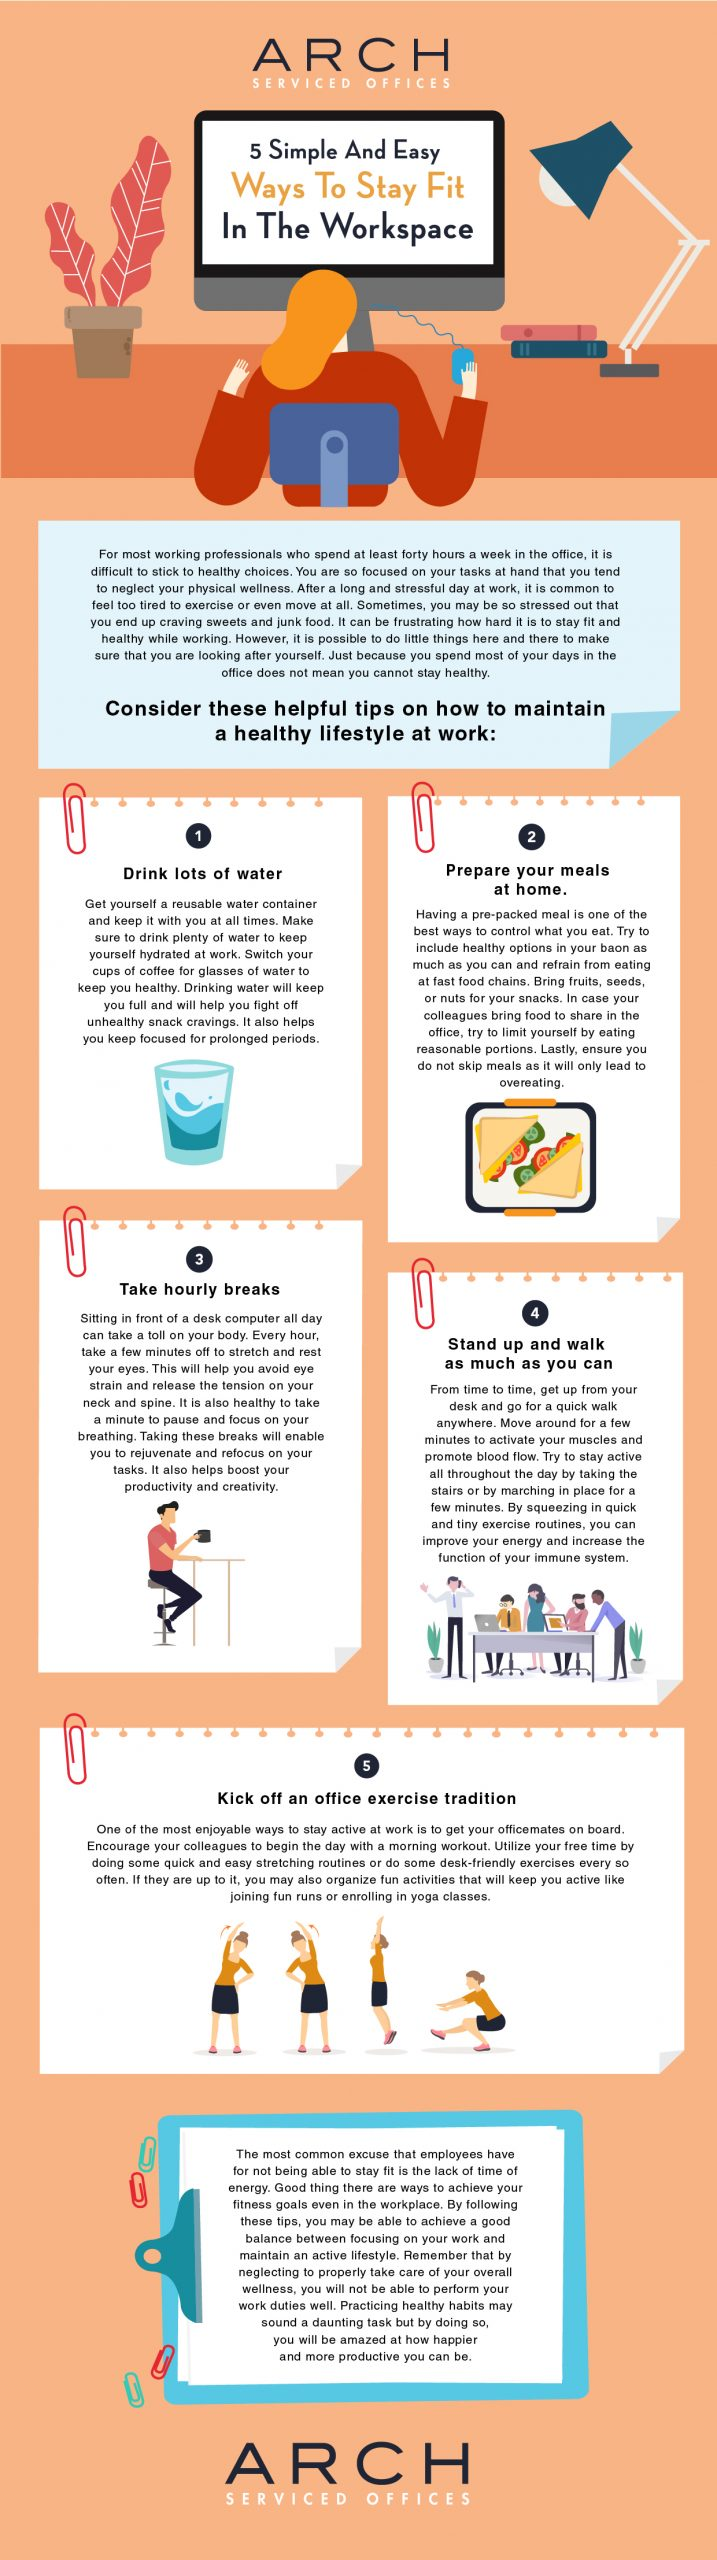 How to stay fit in the workplace